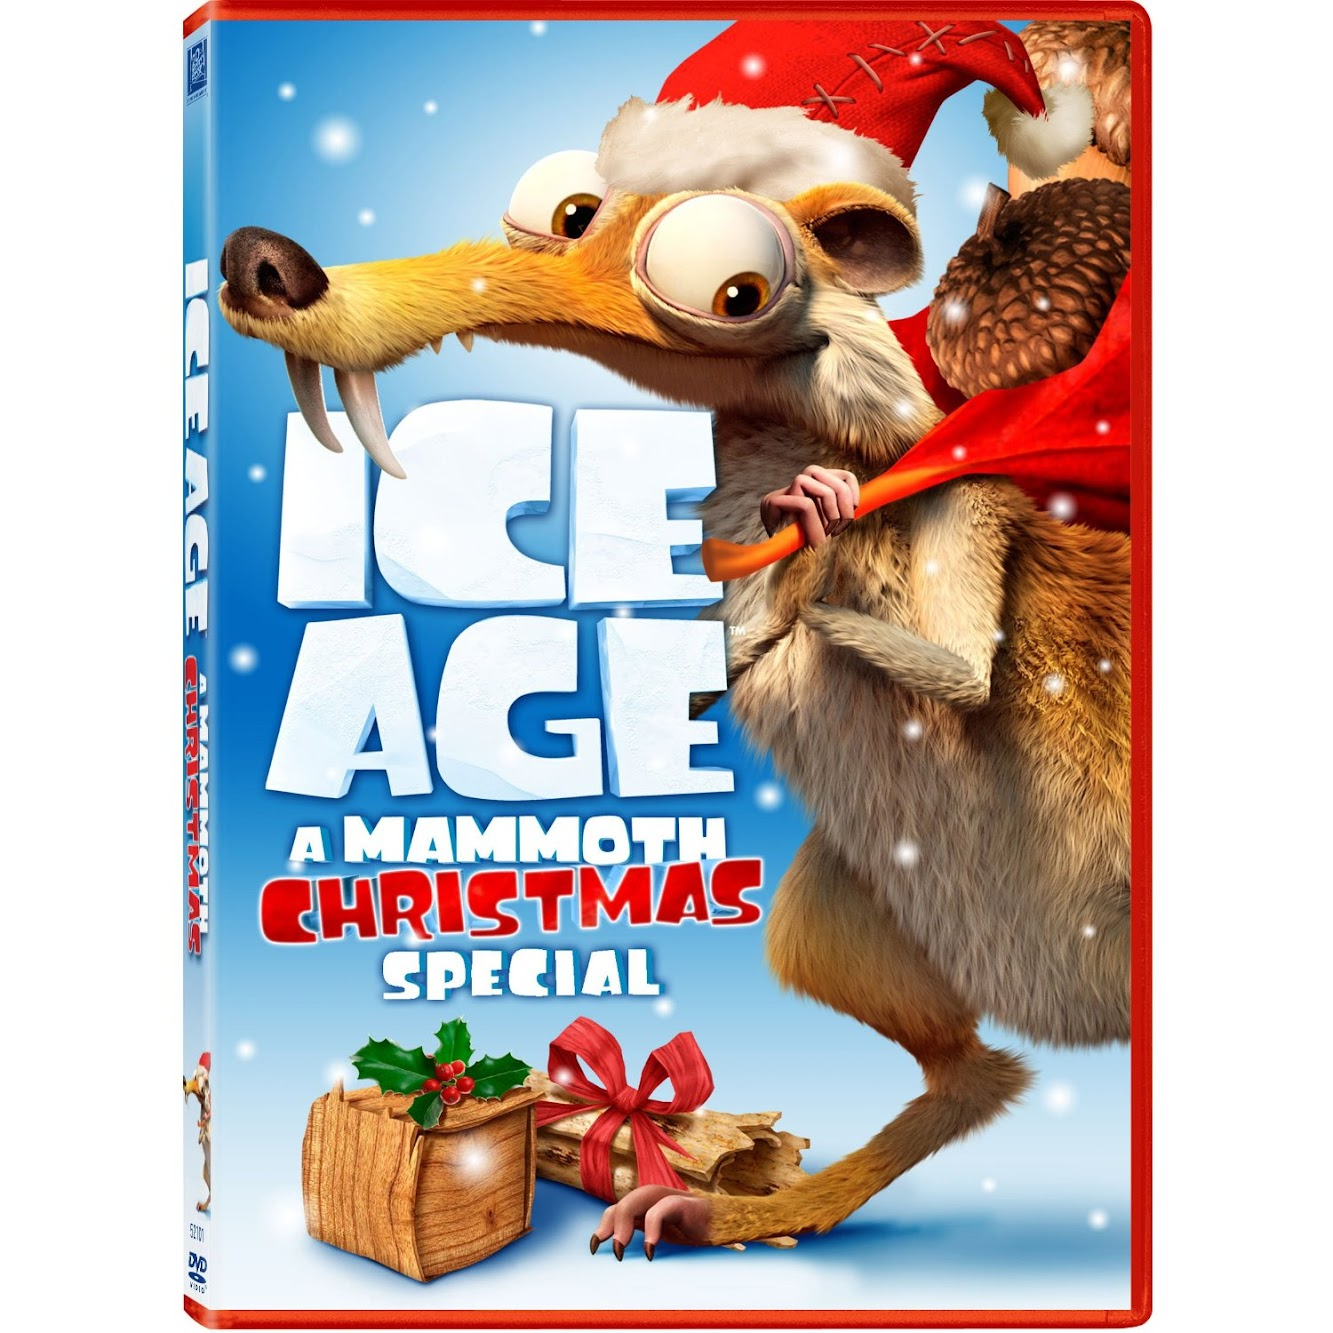 Movie Review: Ice Age: A Mammoth Christmas Special